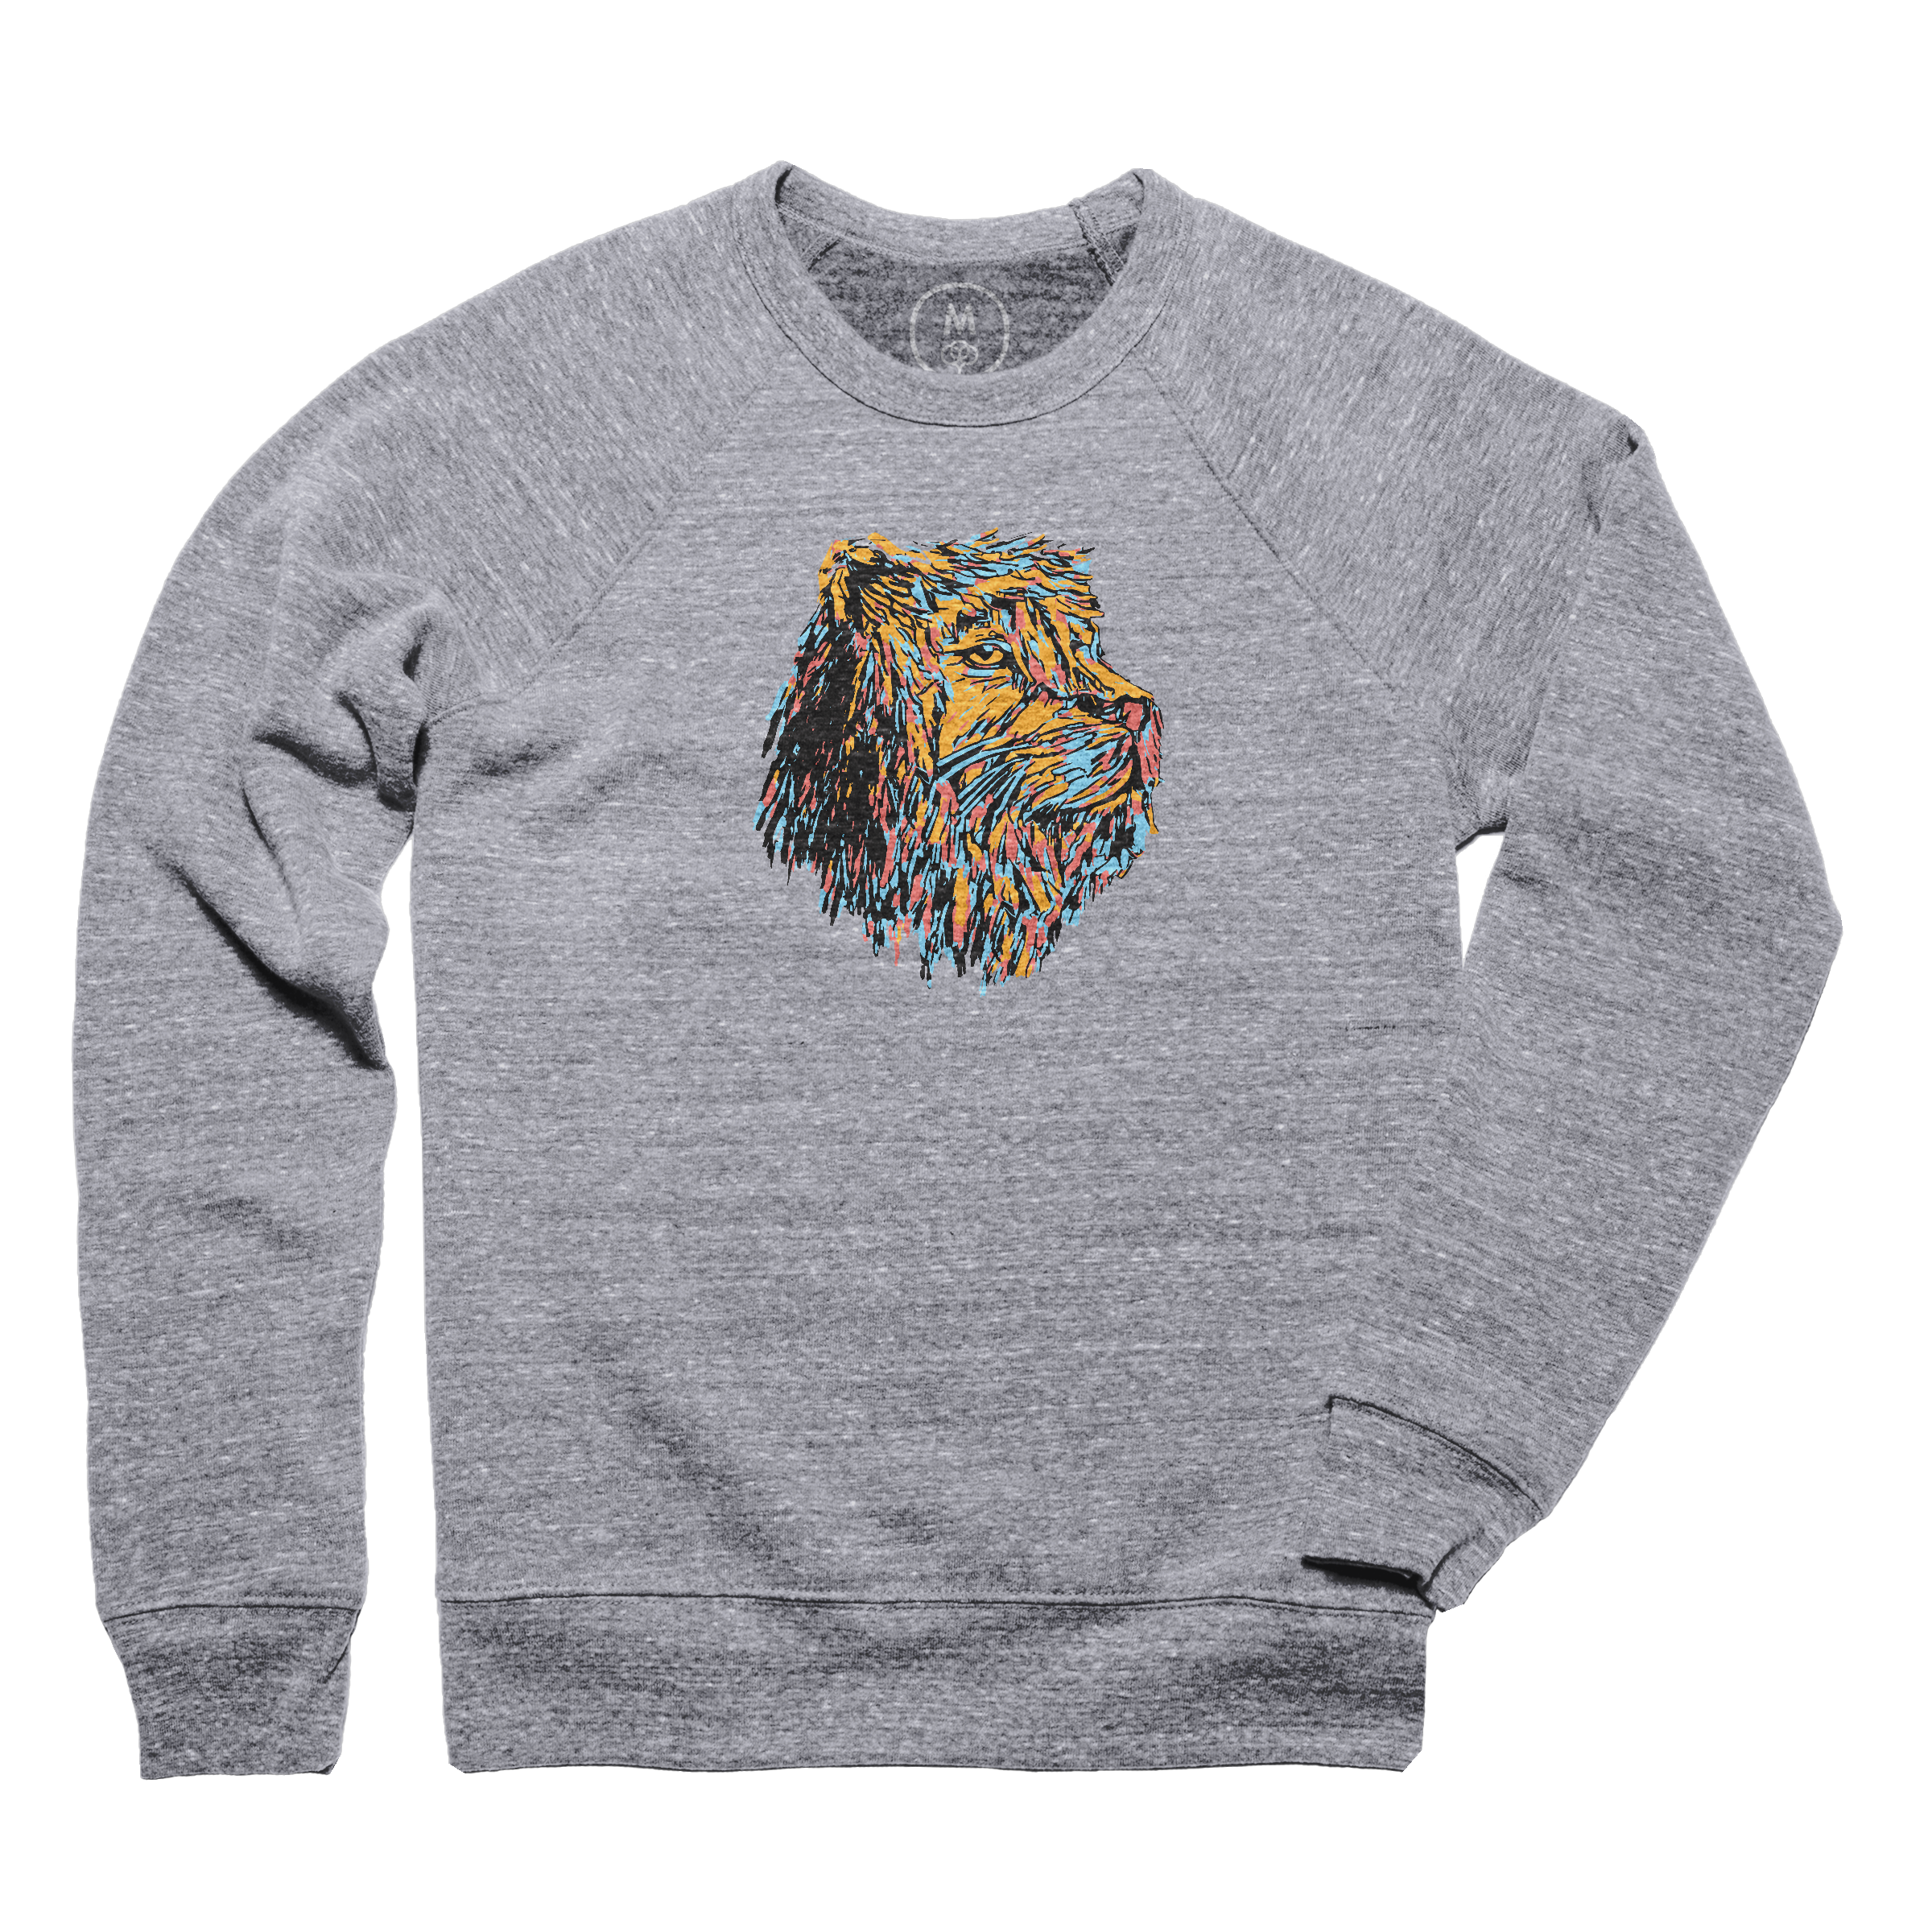 King of the Jungle Pullover Crewneck